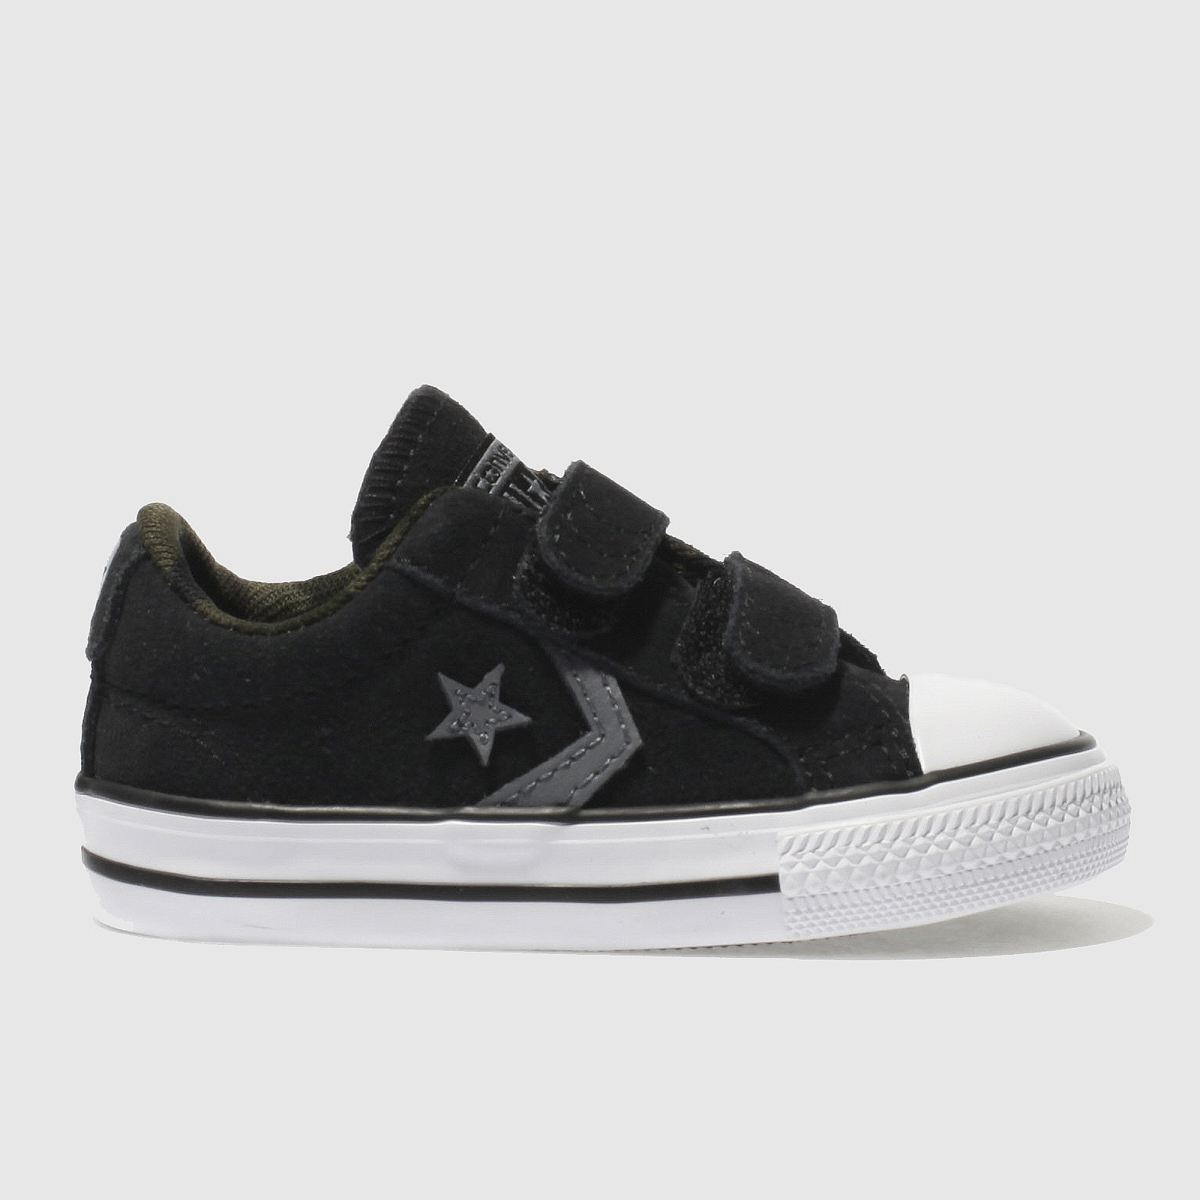 Converse Black & Grey Star Player 2v Trainers Toddler